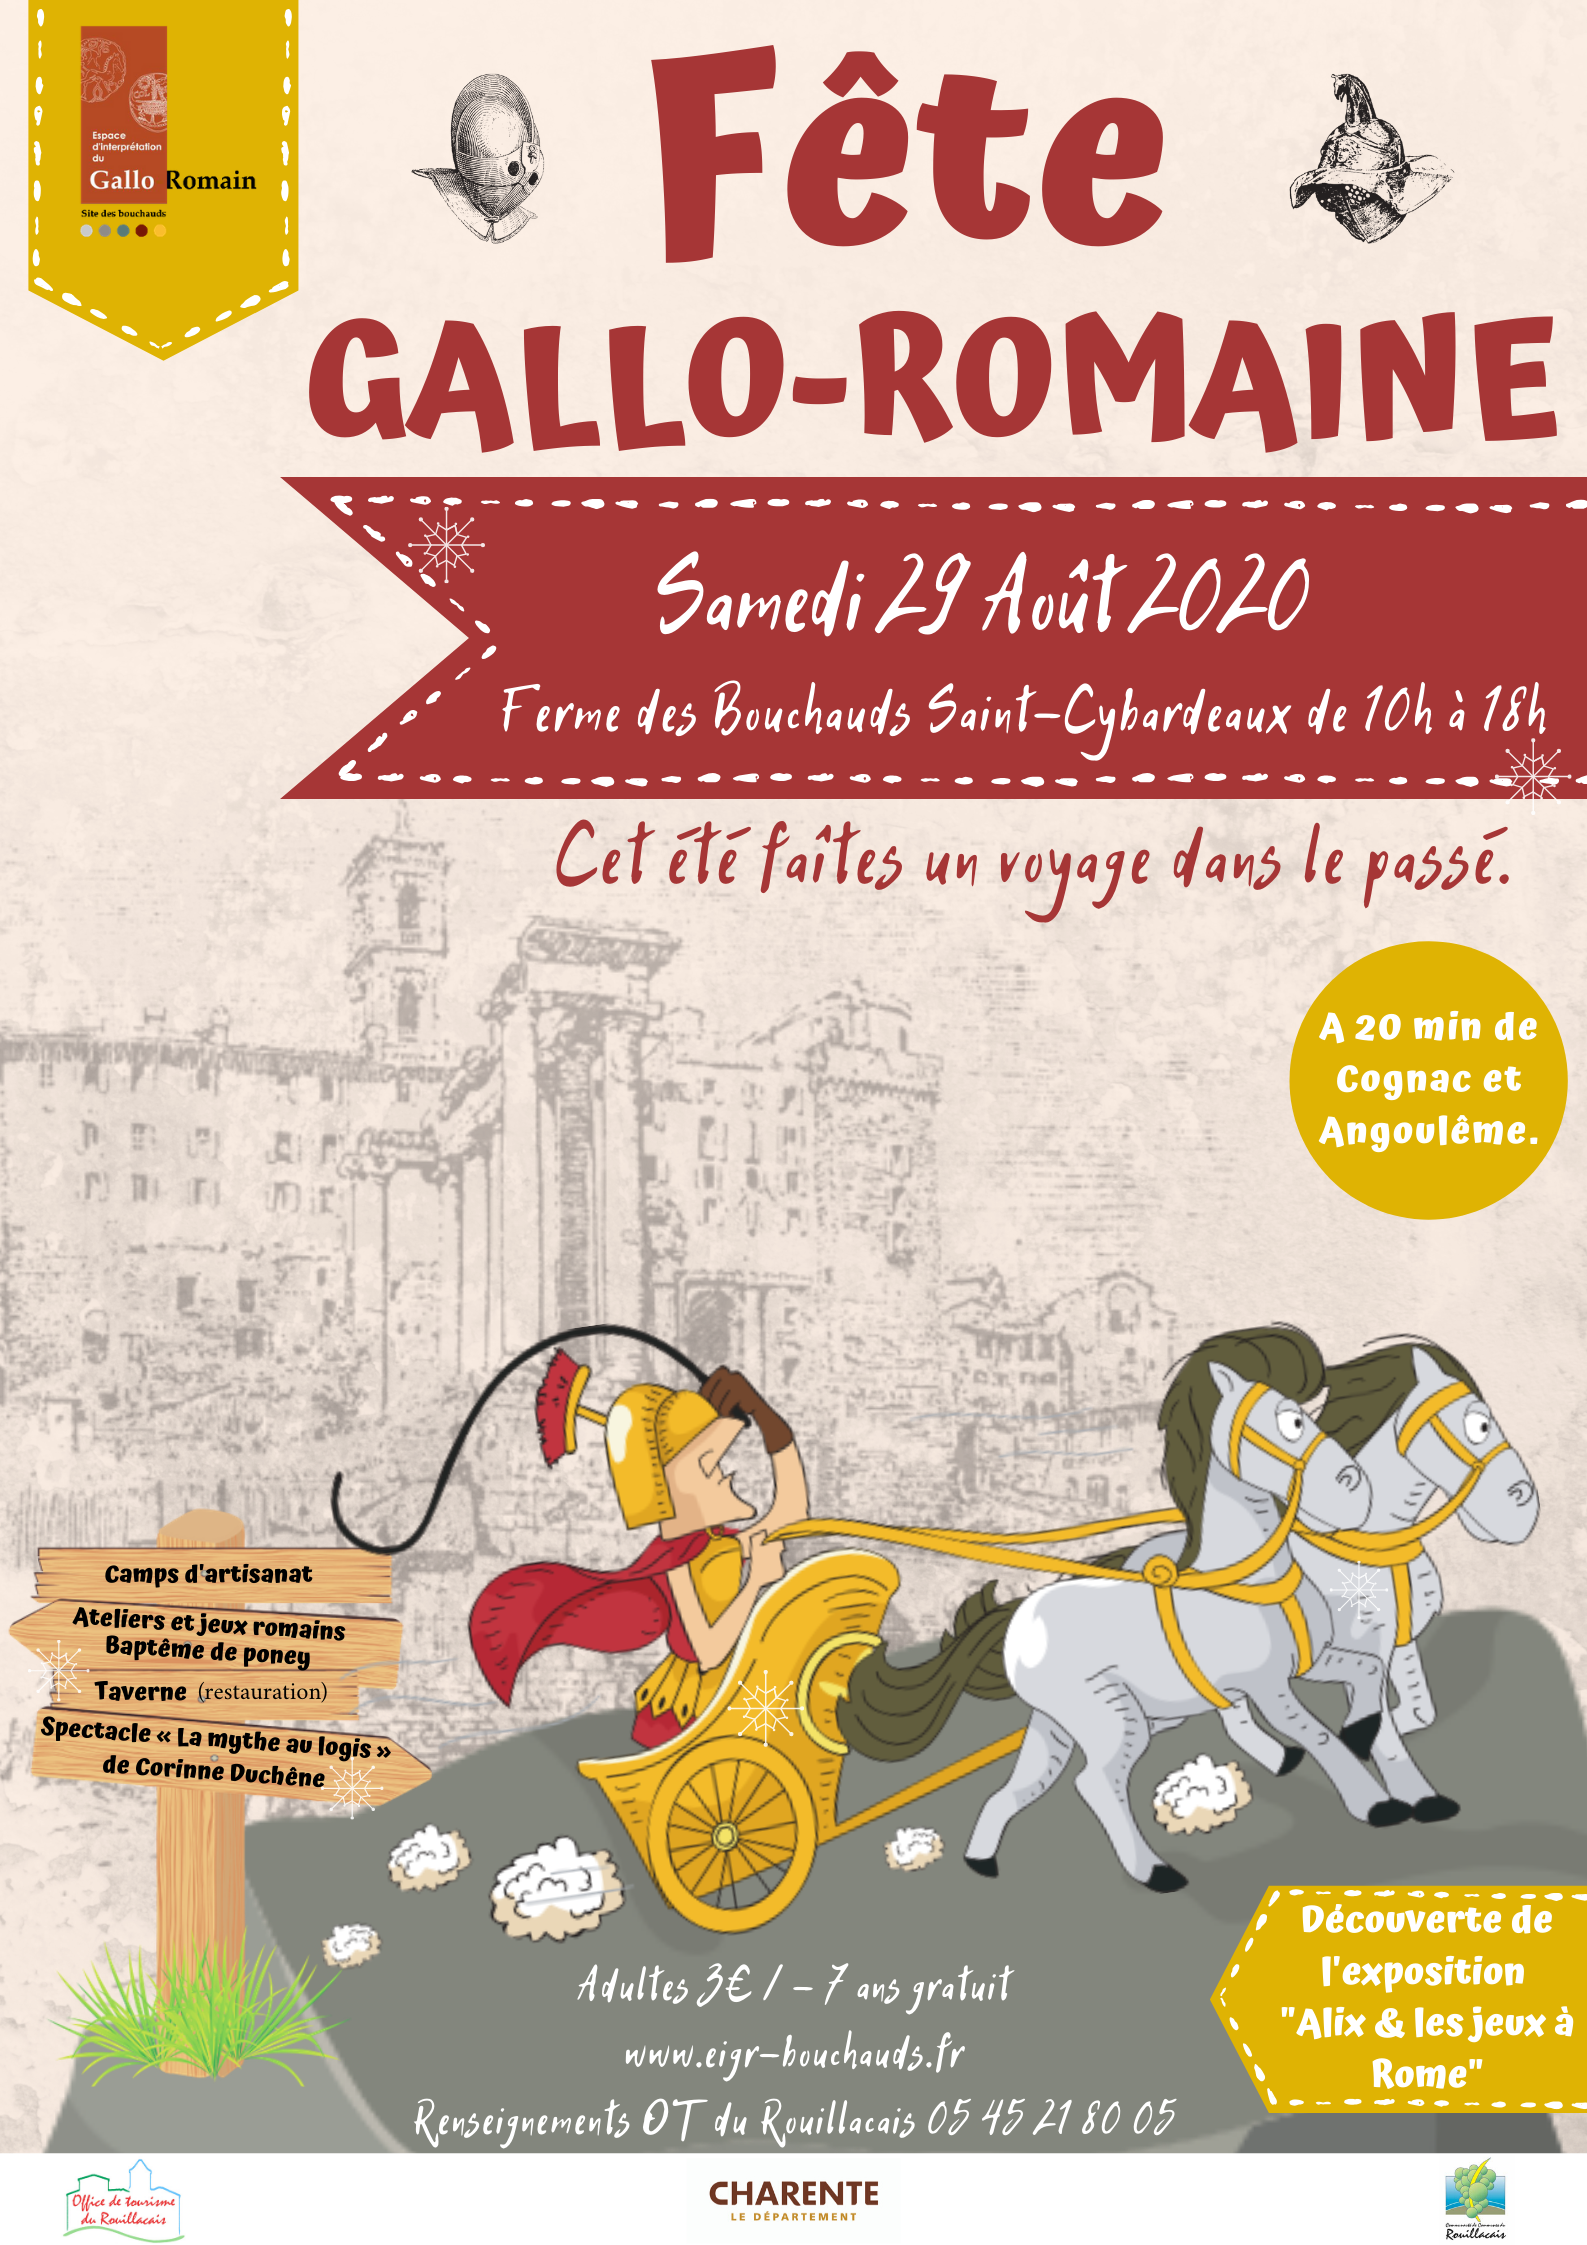 Fête gallo romaine